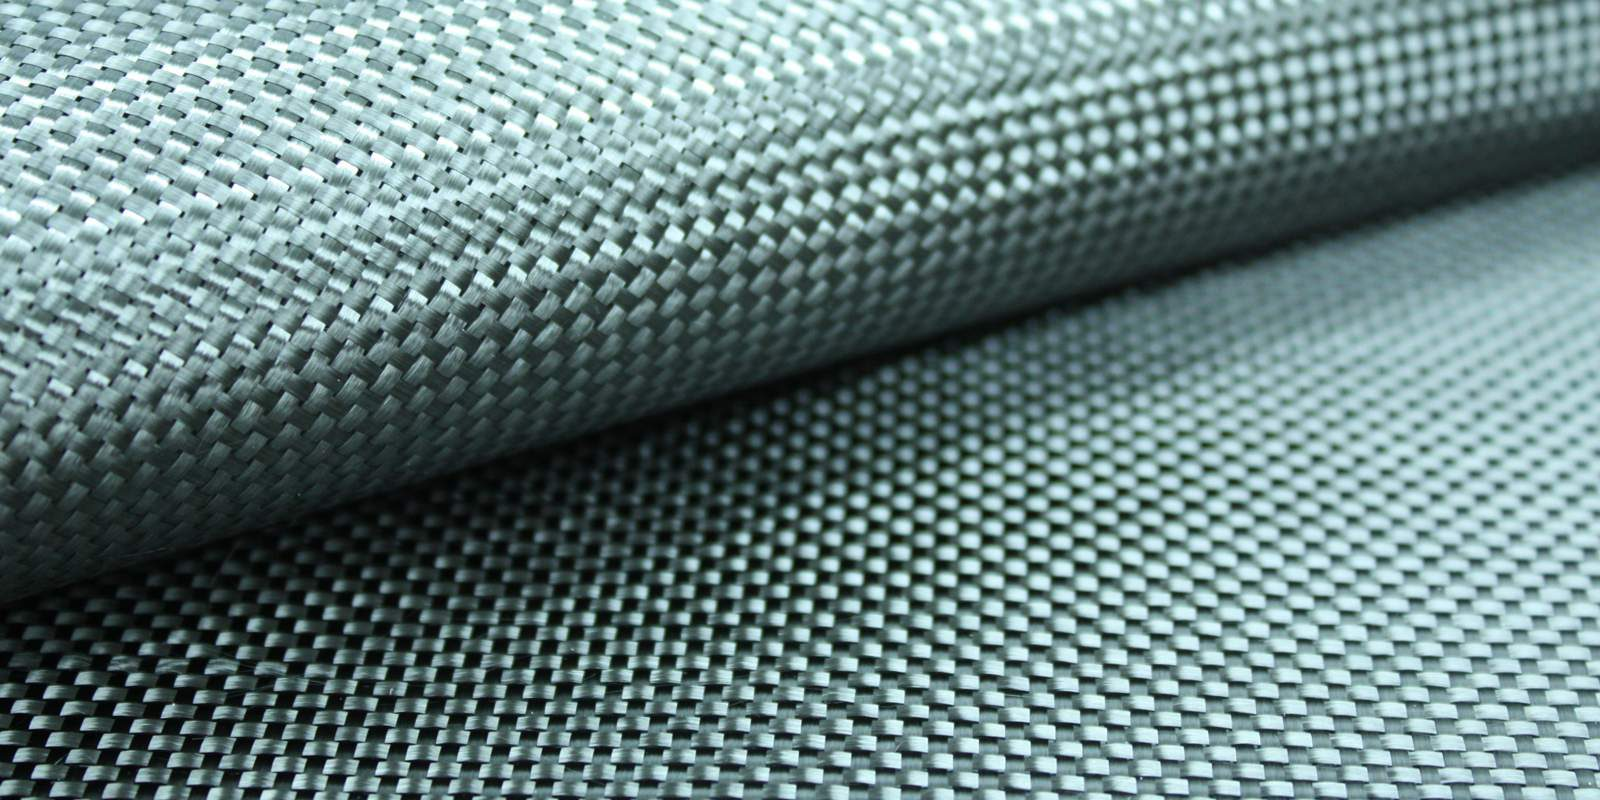 Composite and tooling materials